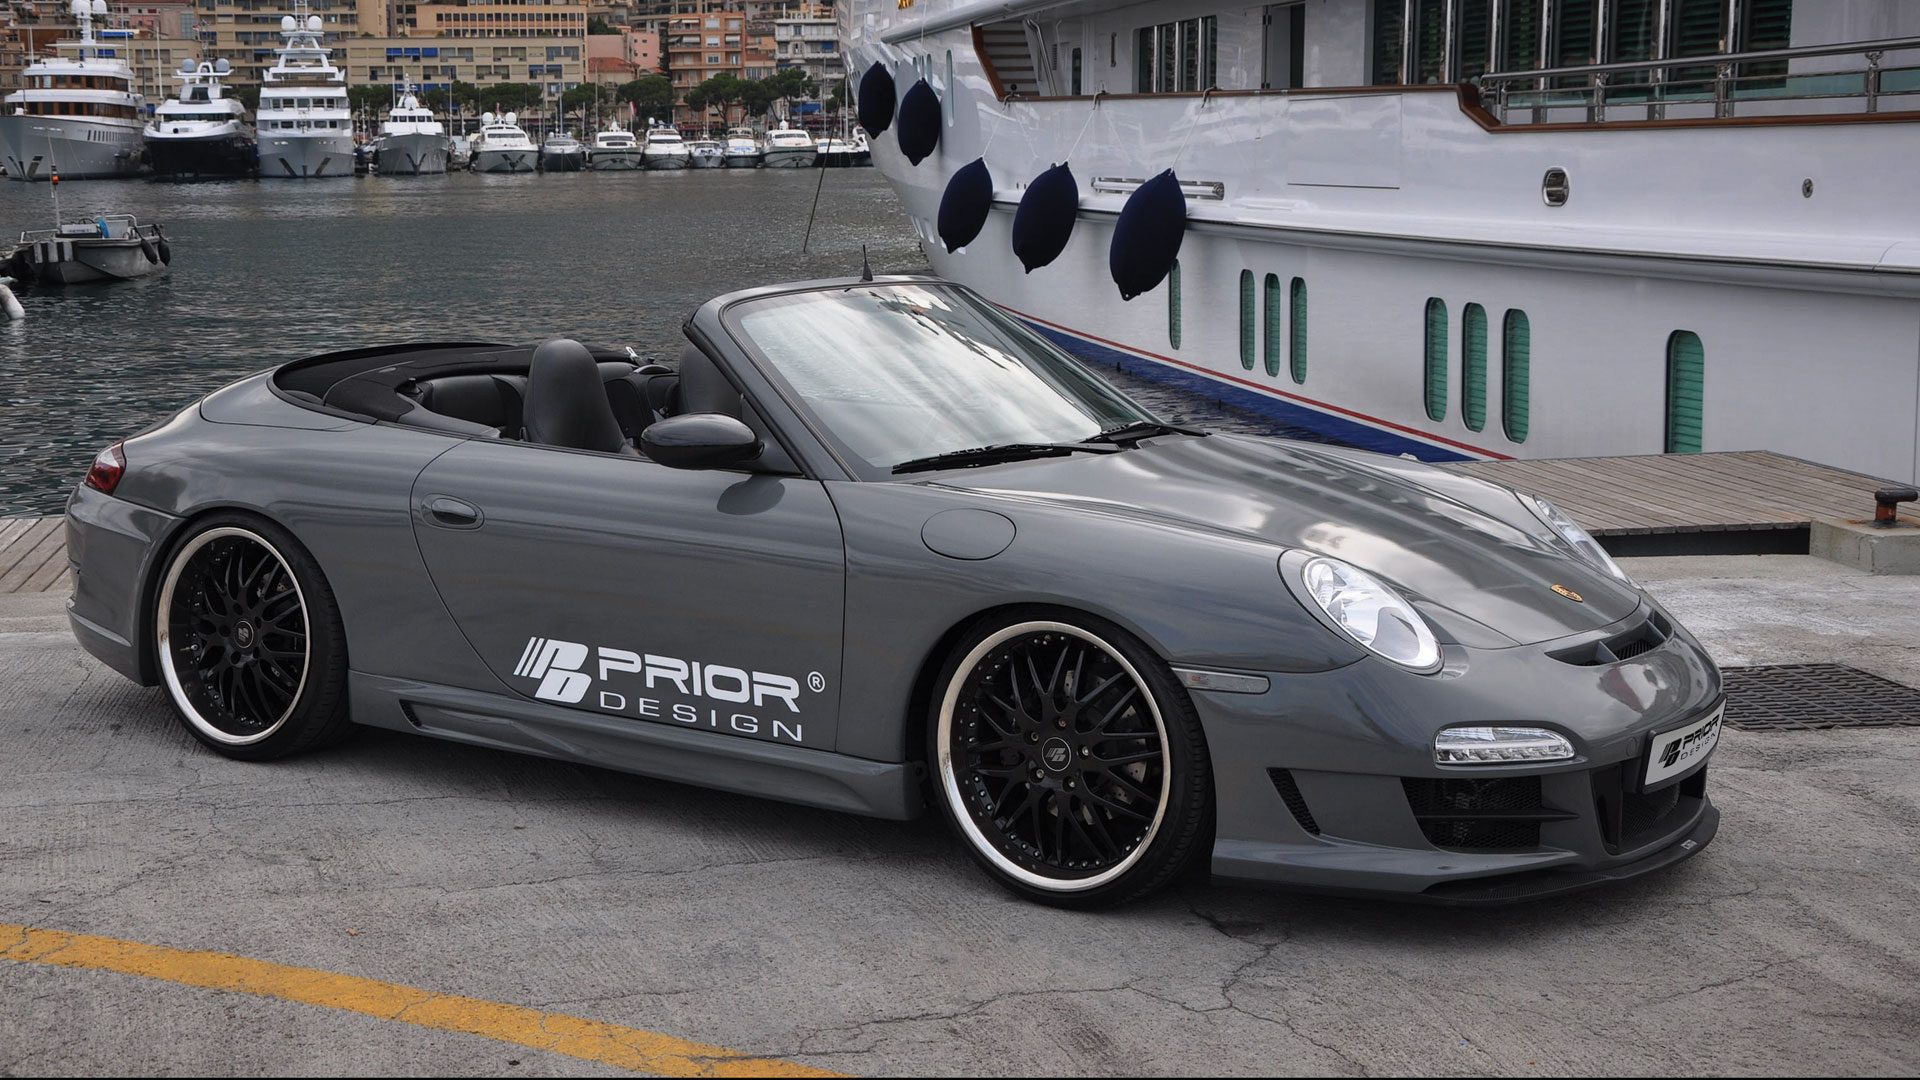 Porsche 911 996 1 996 2 Tuning Pd3 Conversion Package To 997 2 Aerodynamic Kit M D Exclusive Cardesign